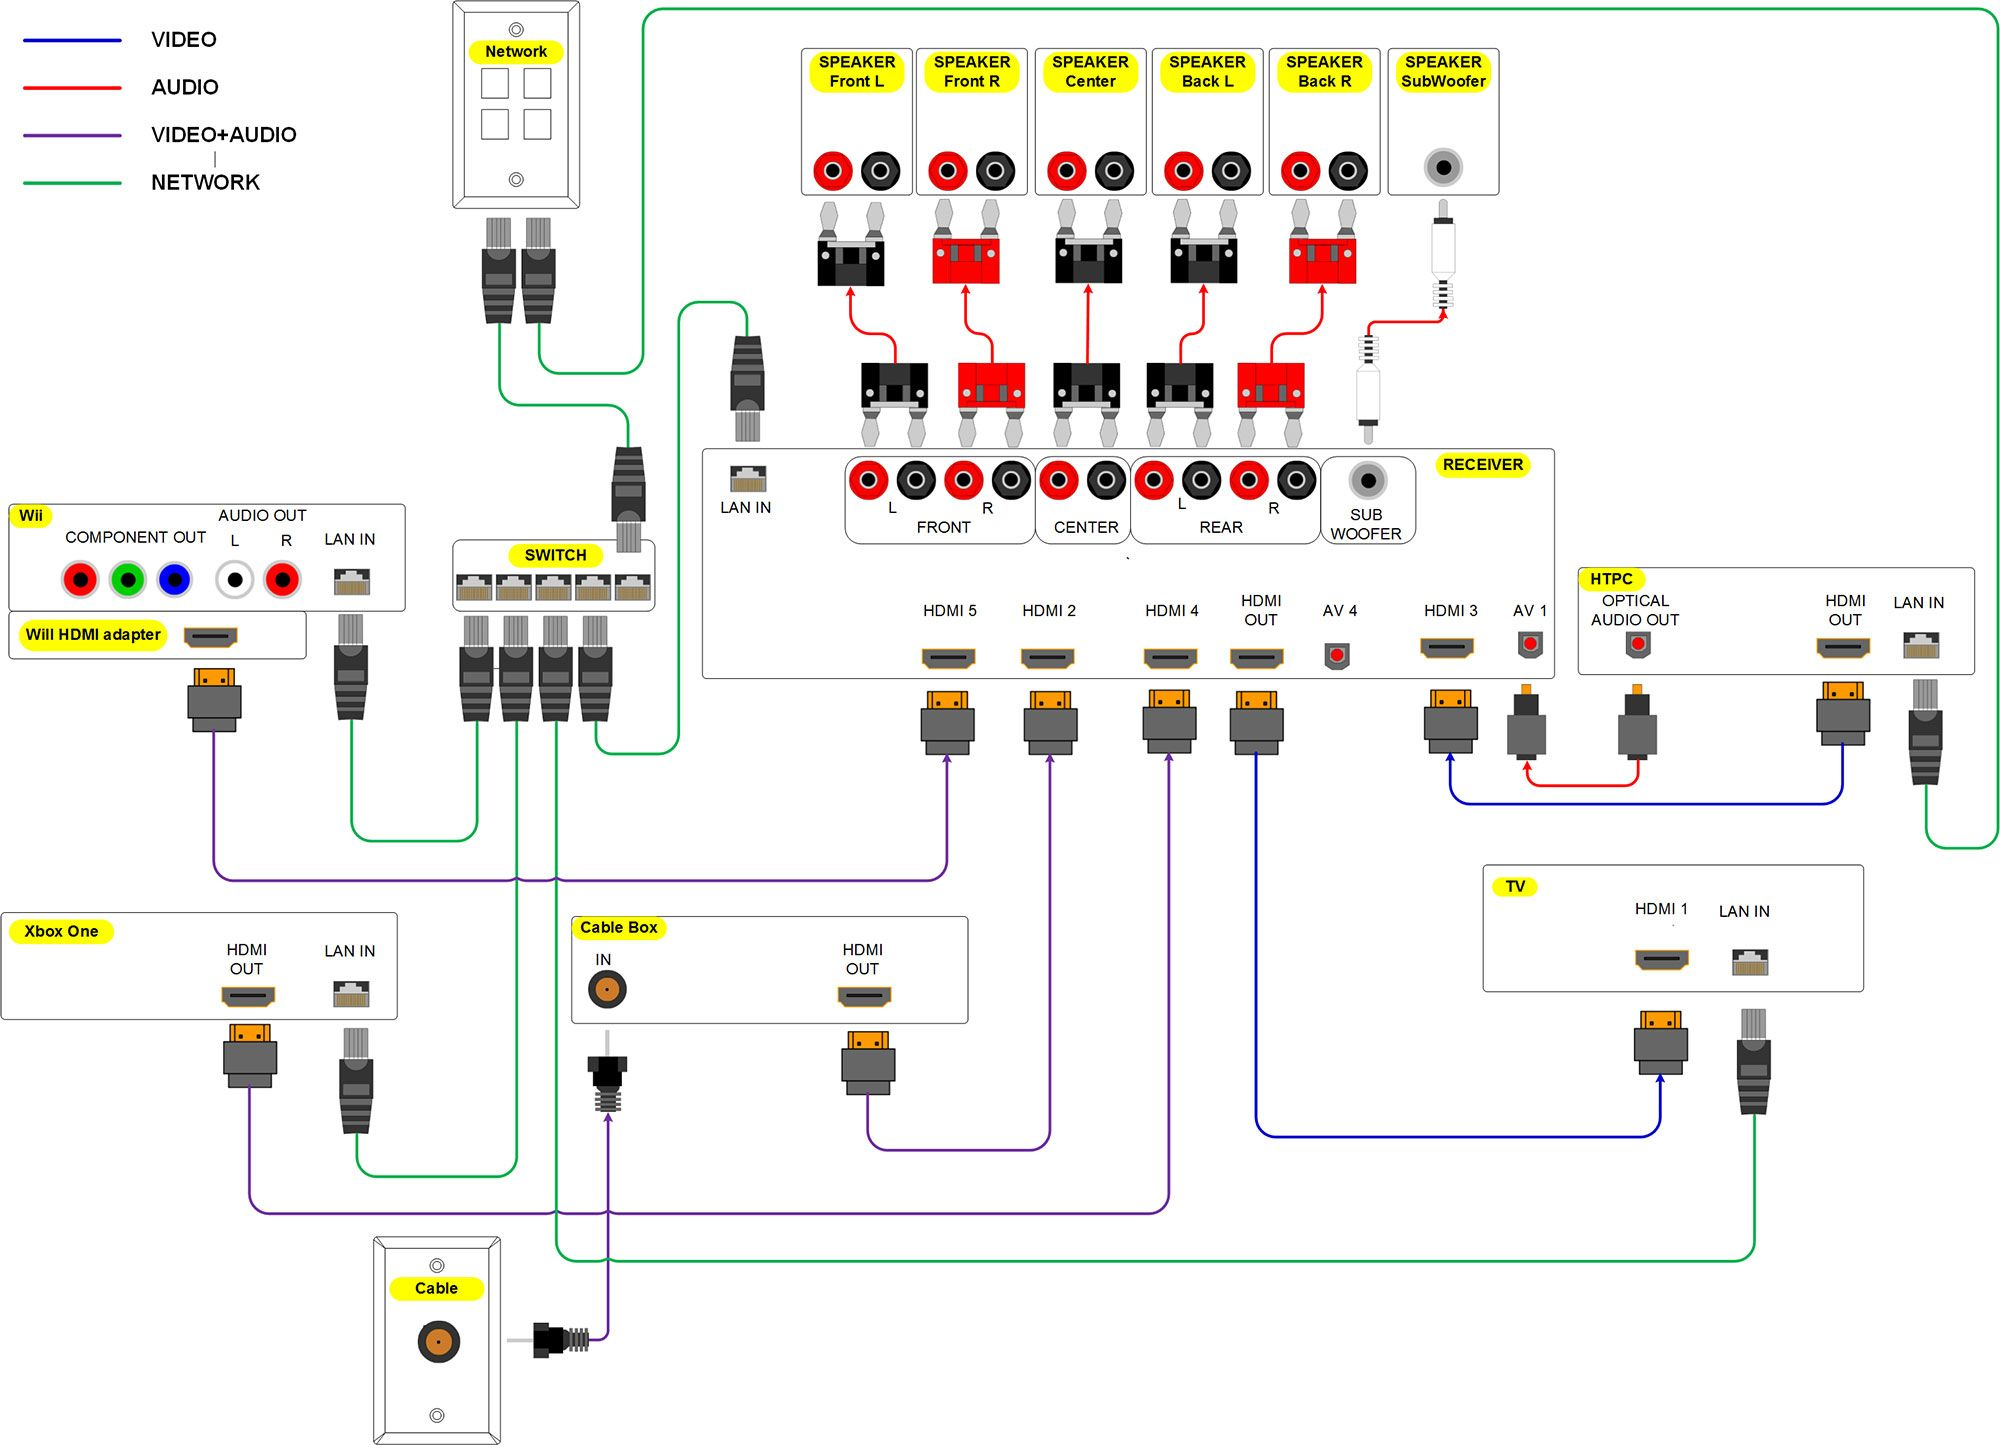 Pleasing Home Audio Wiring Diagrams Moreover Whole House Speaker System Wiring Cloud Inklaidewilluminateatxorg